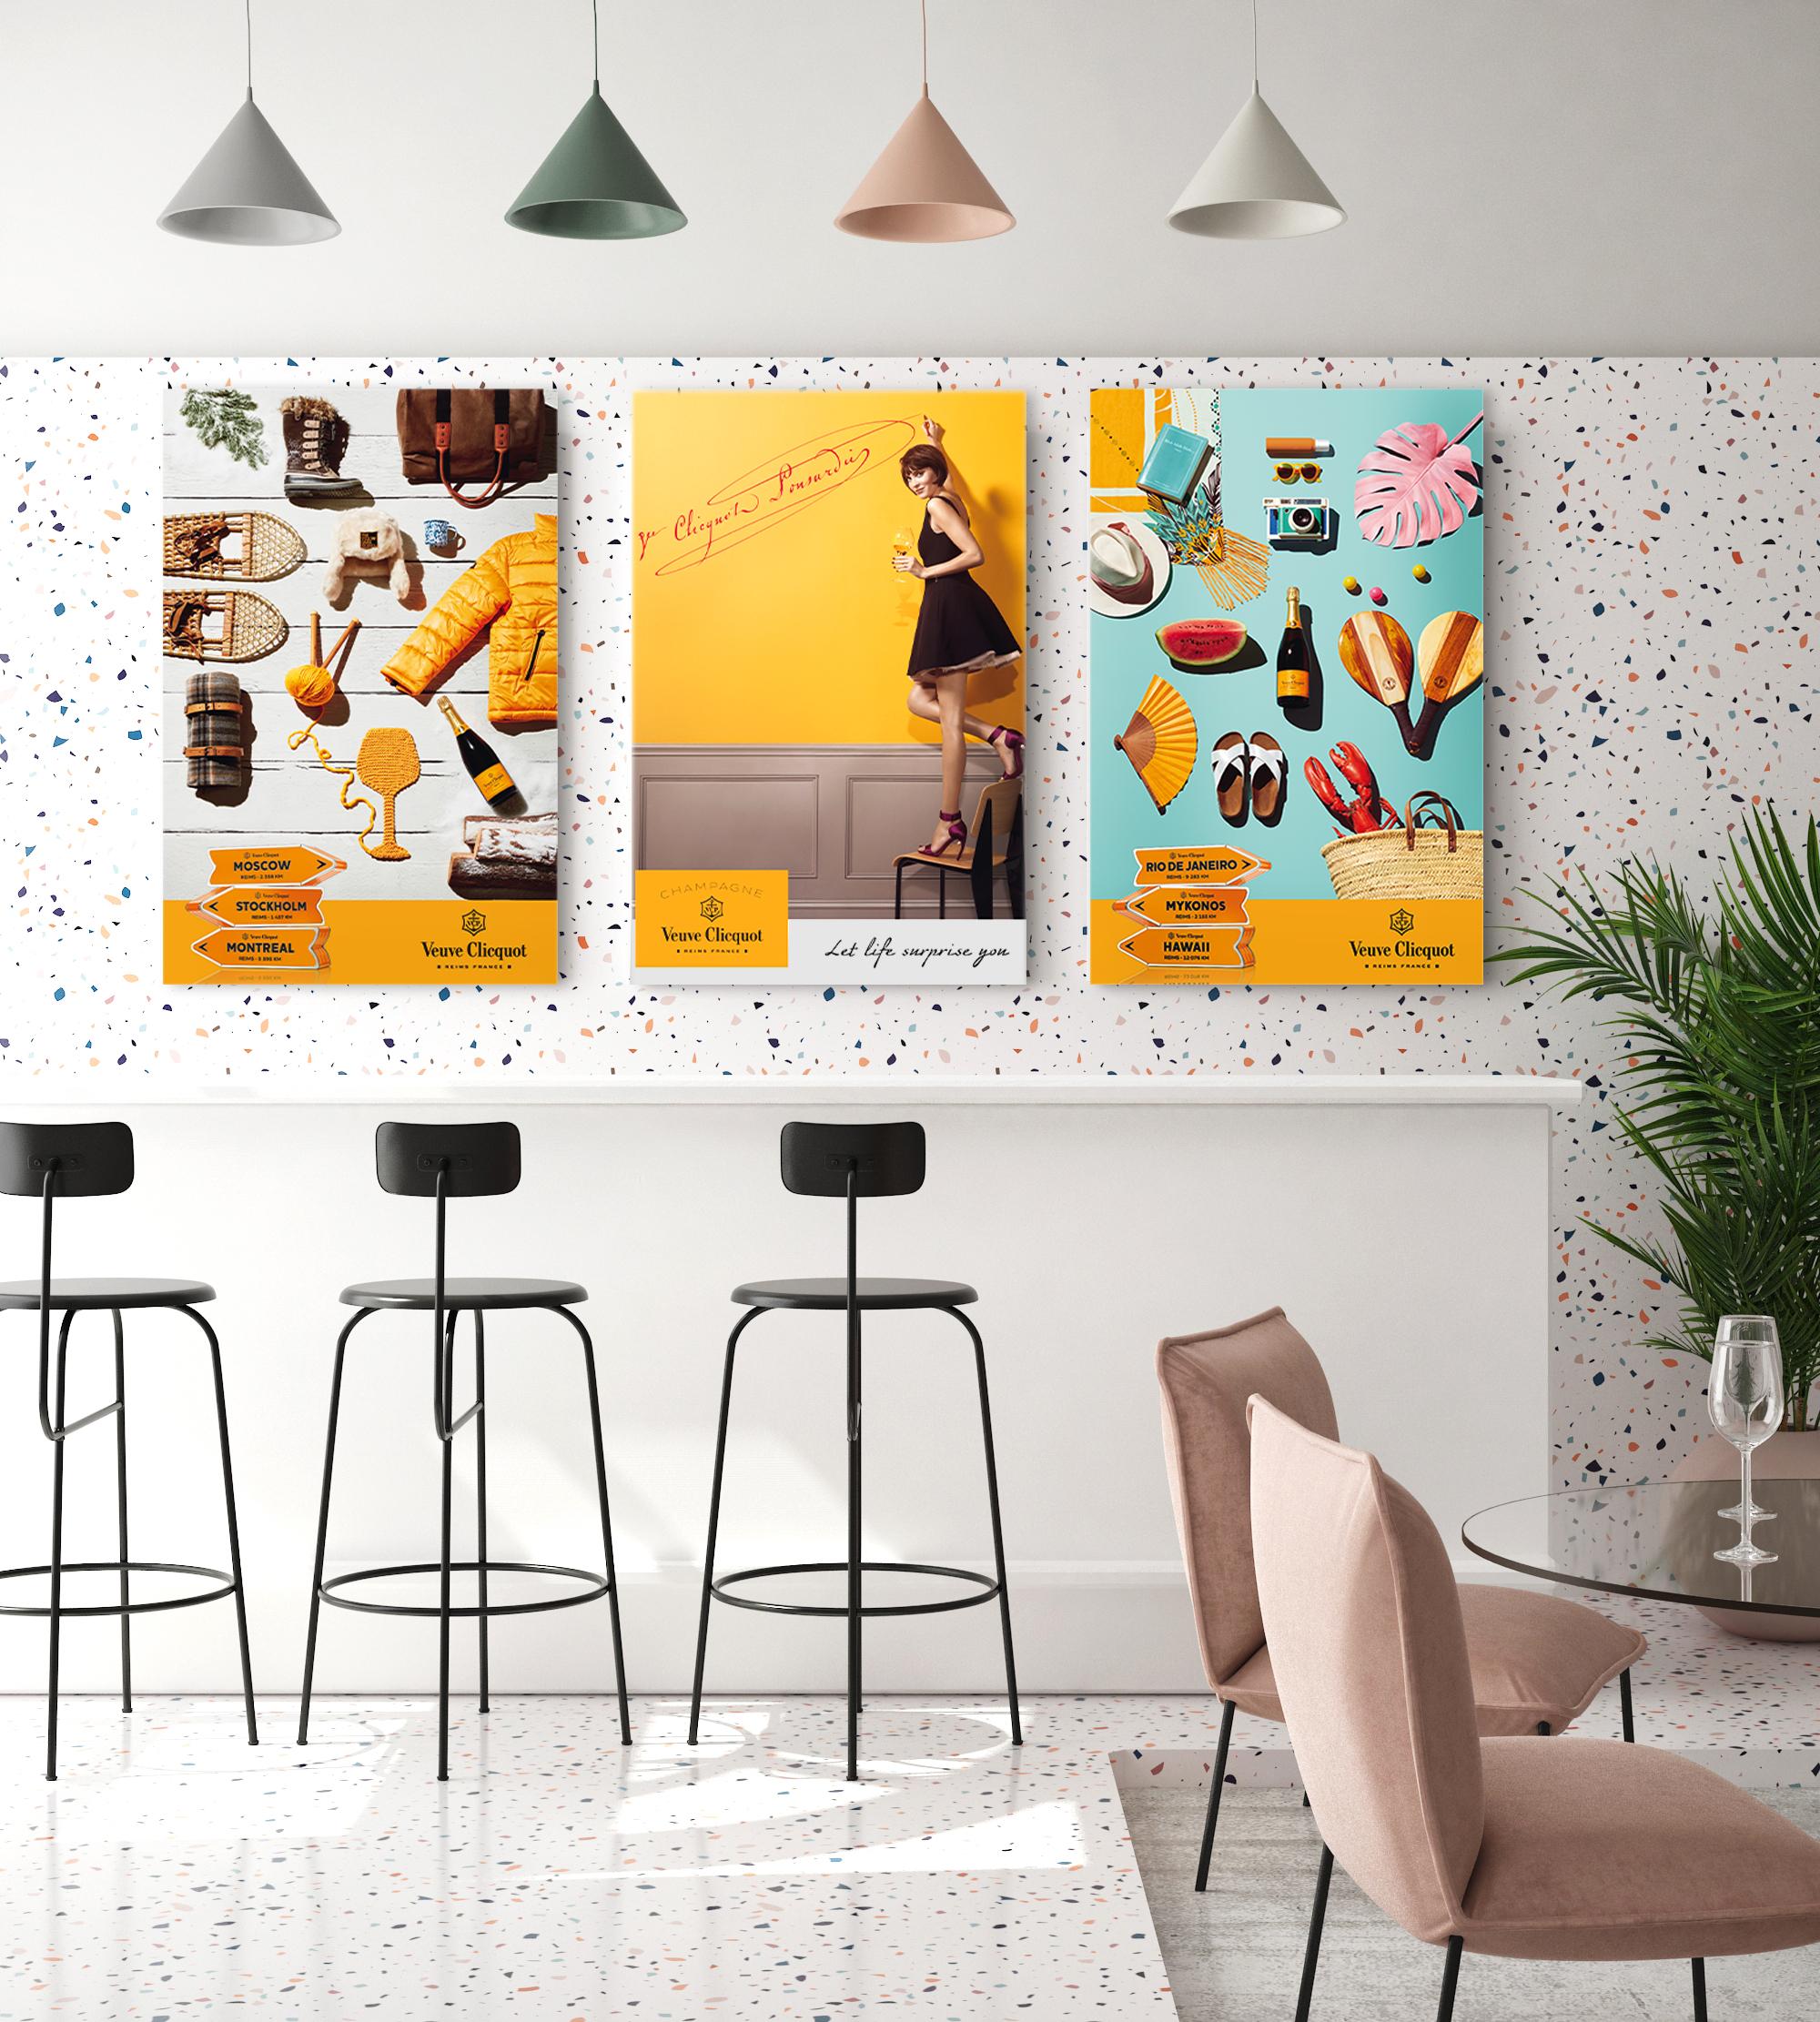 Three wall mounted prints hanging in a communal workspace area